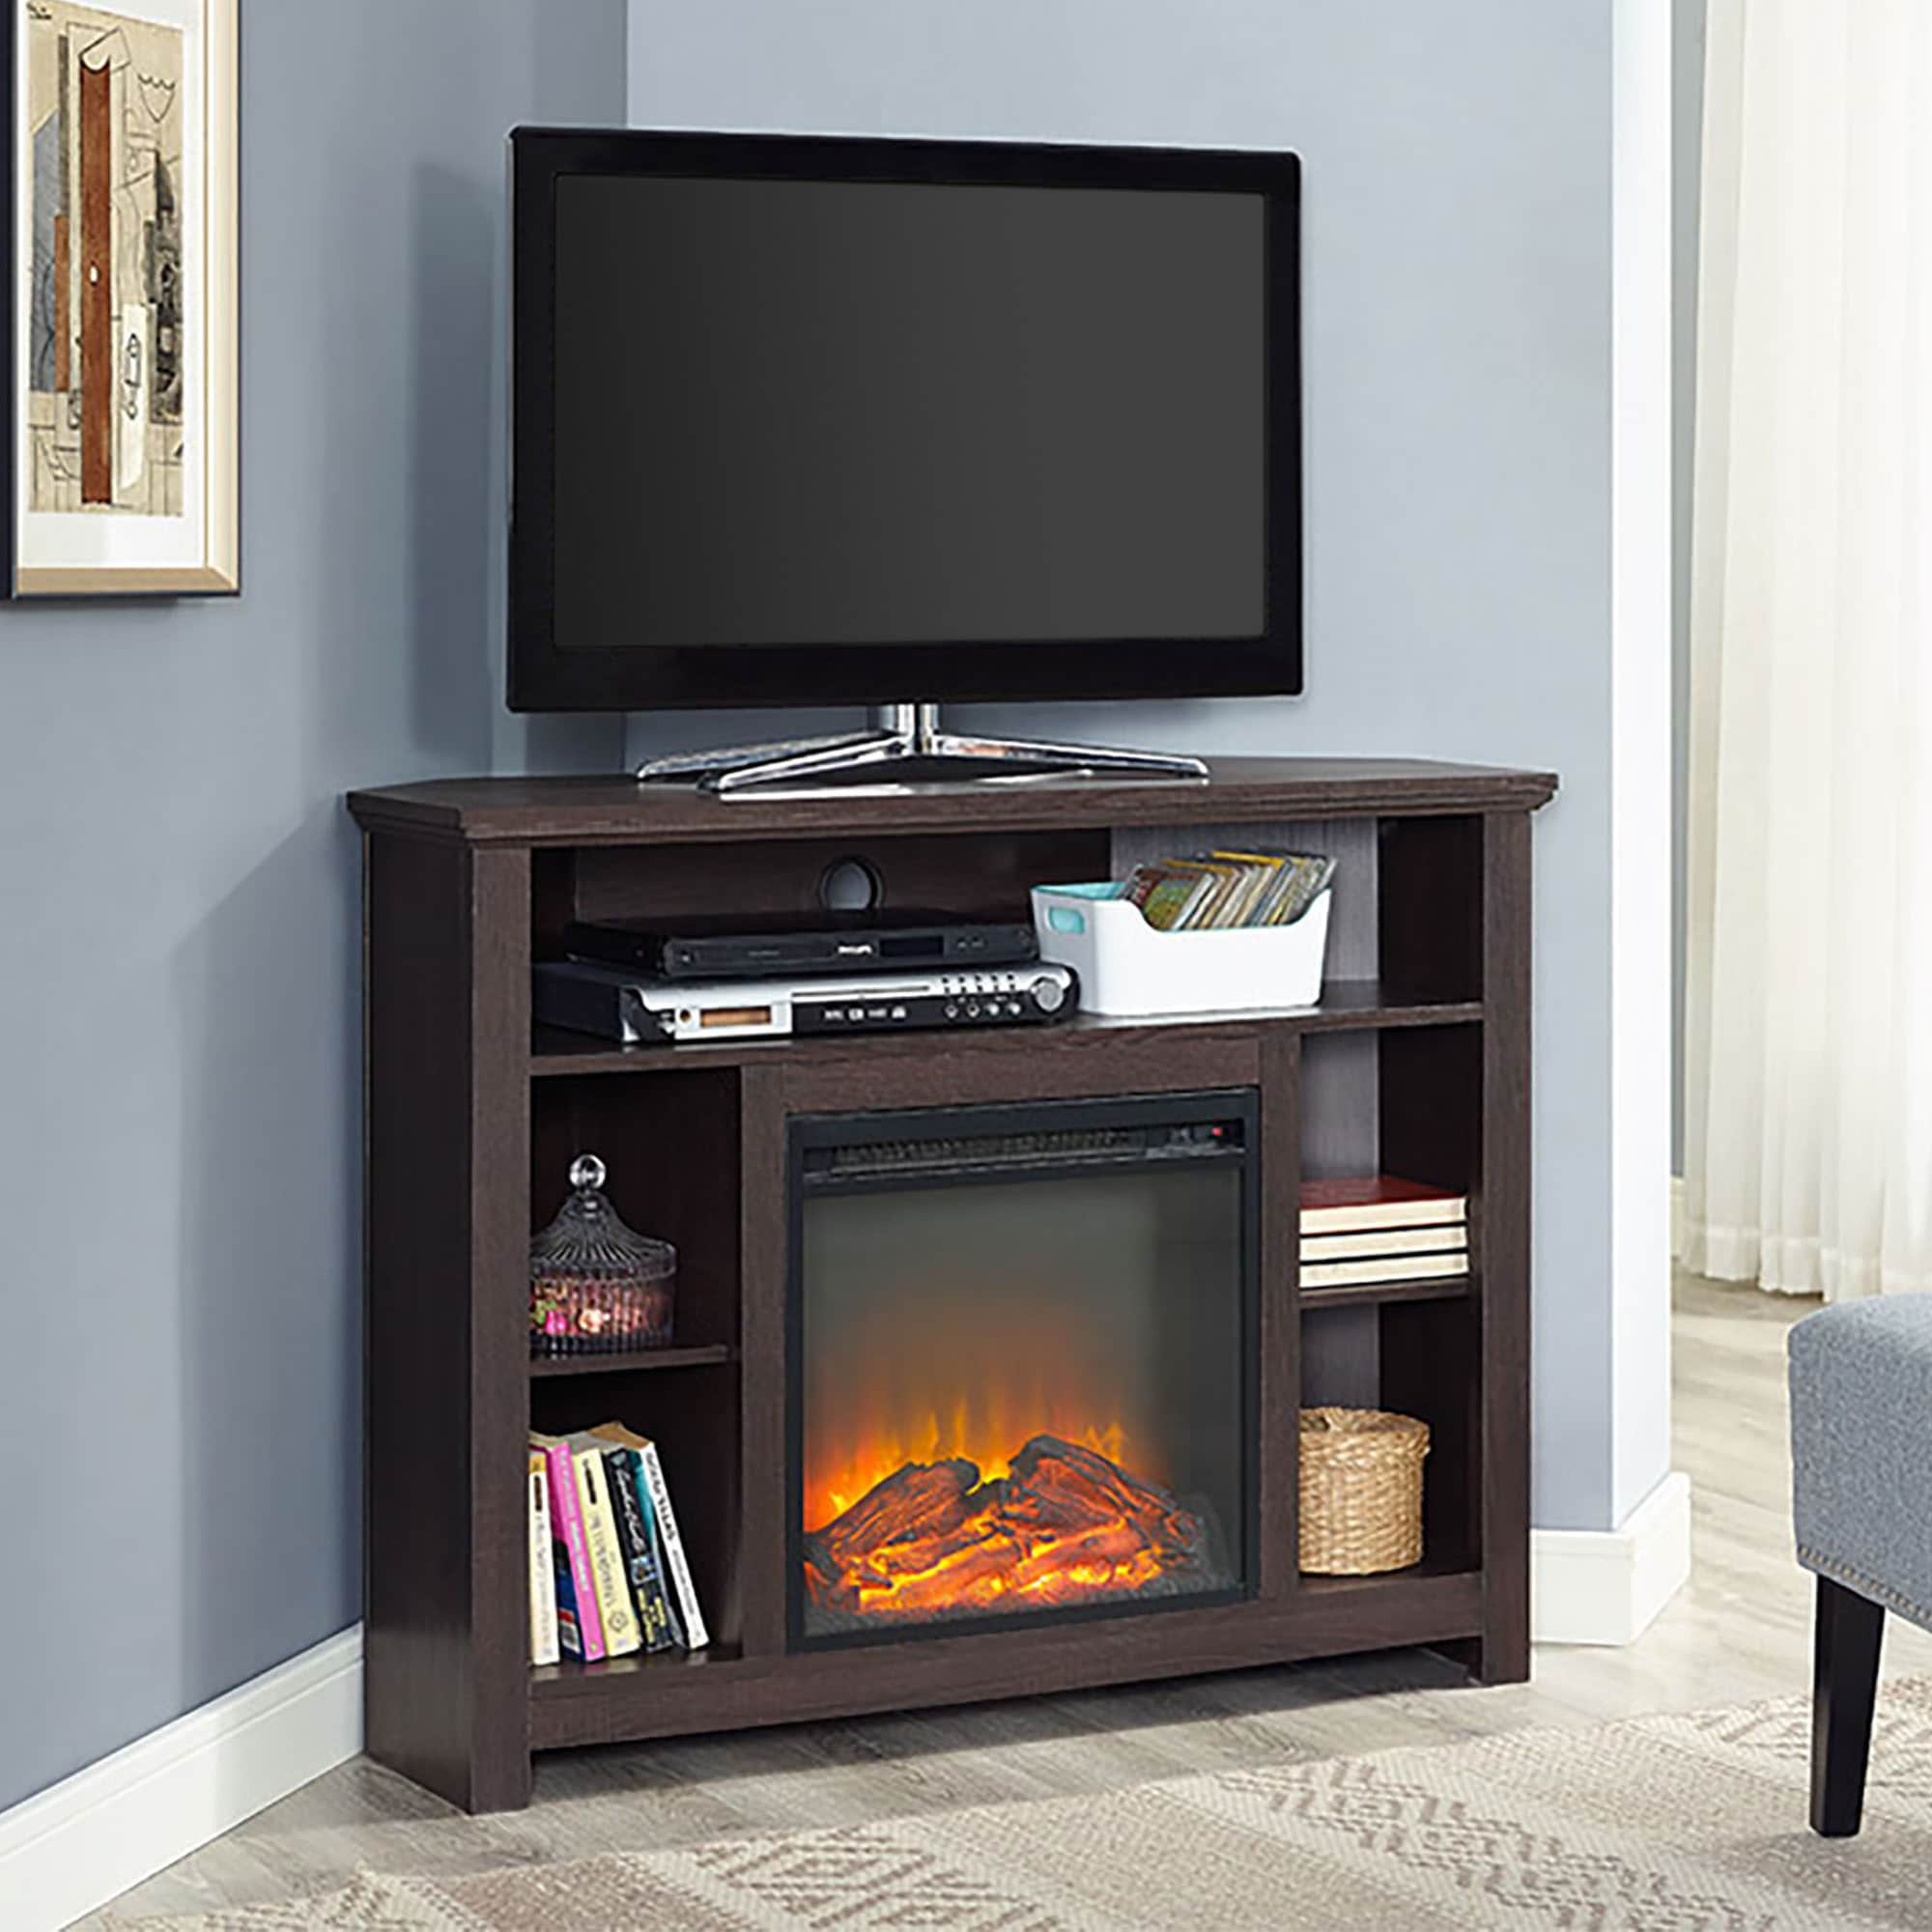 Shop 44 Highboy Corner Fireplace Tv Stand Espresso 44 X 16 X